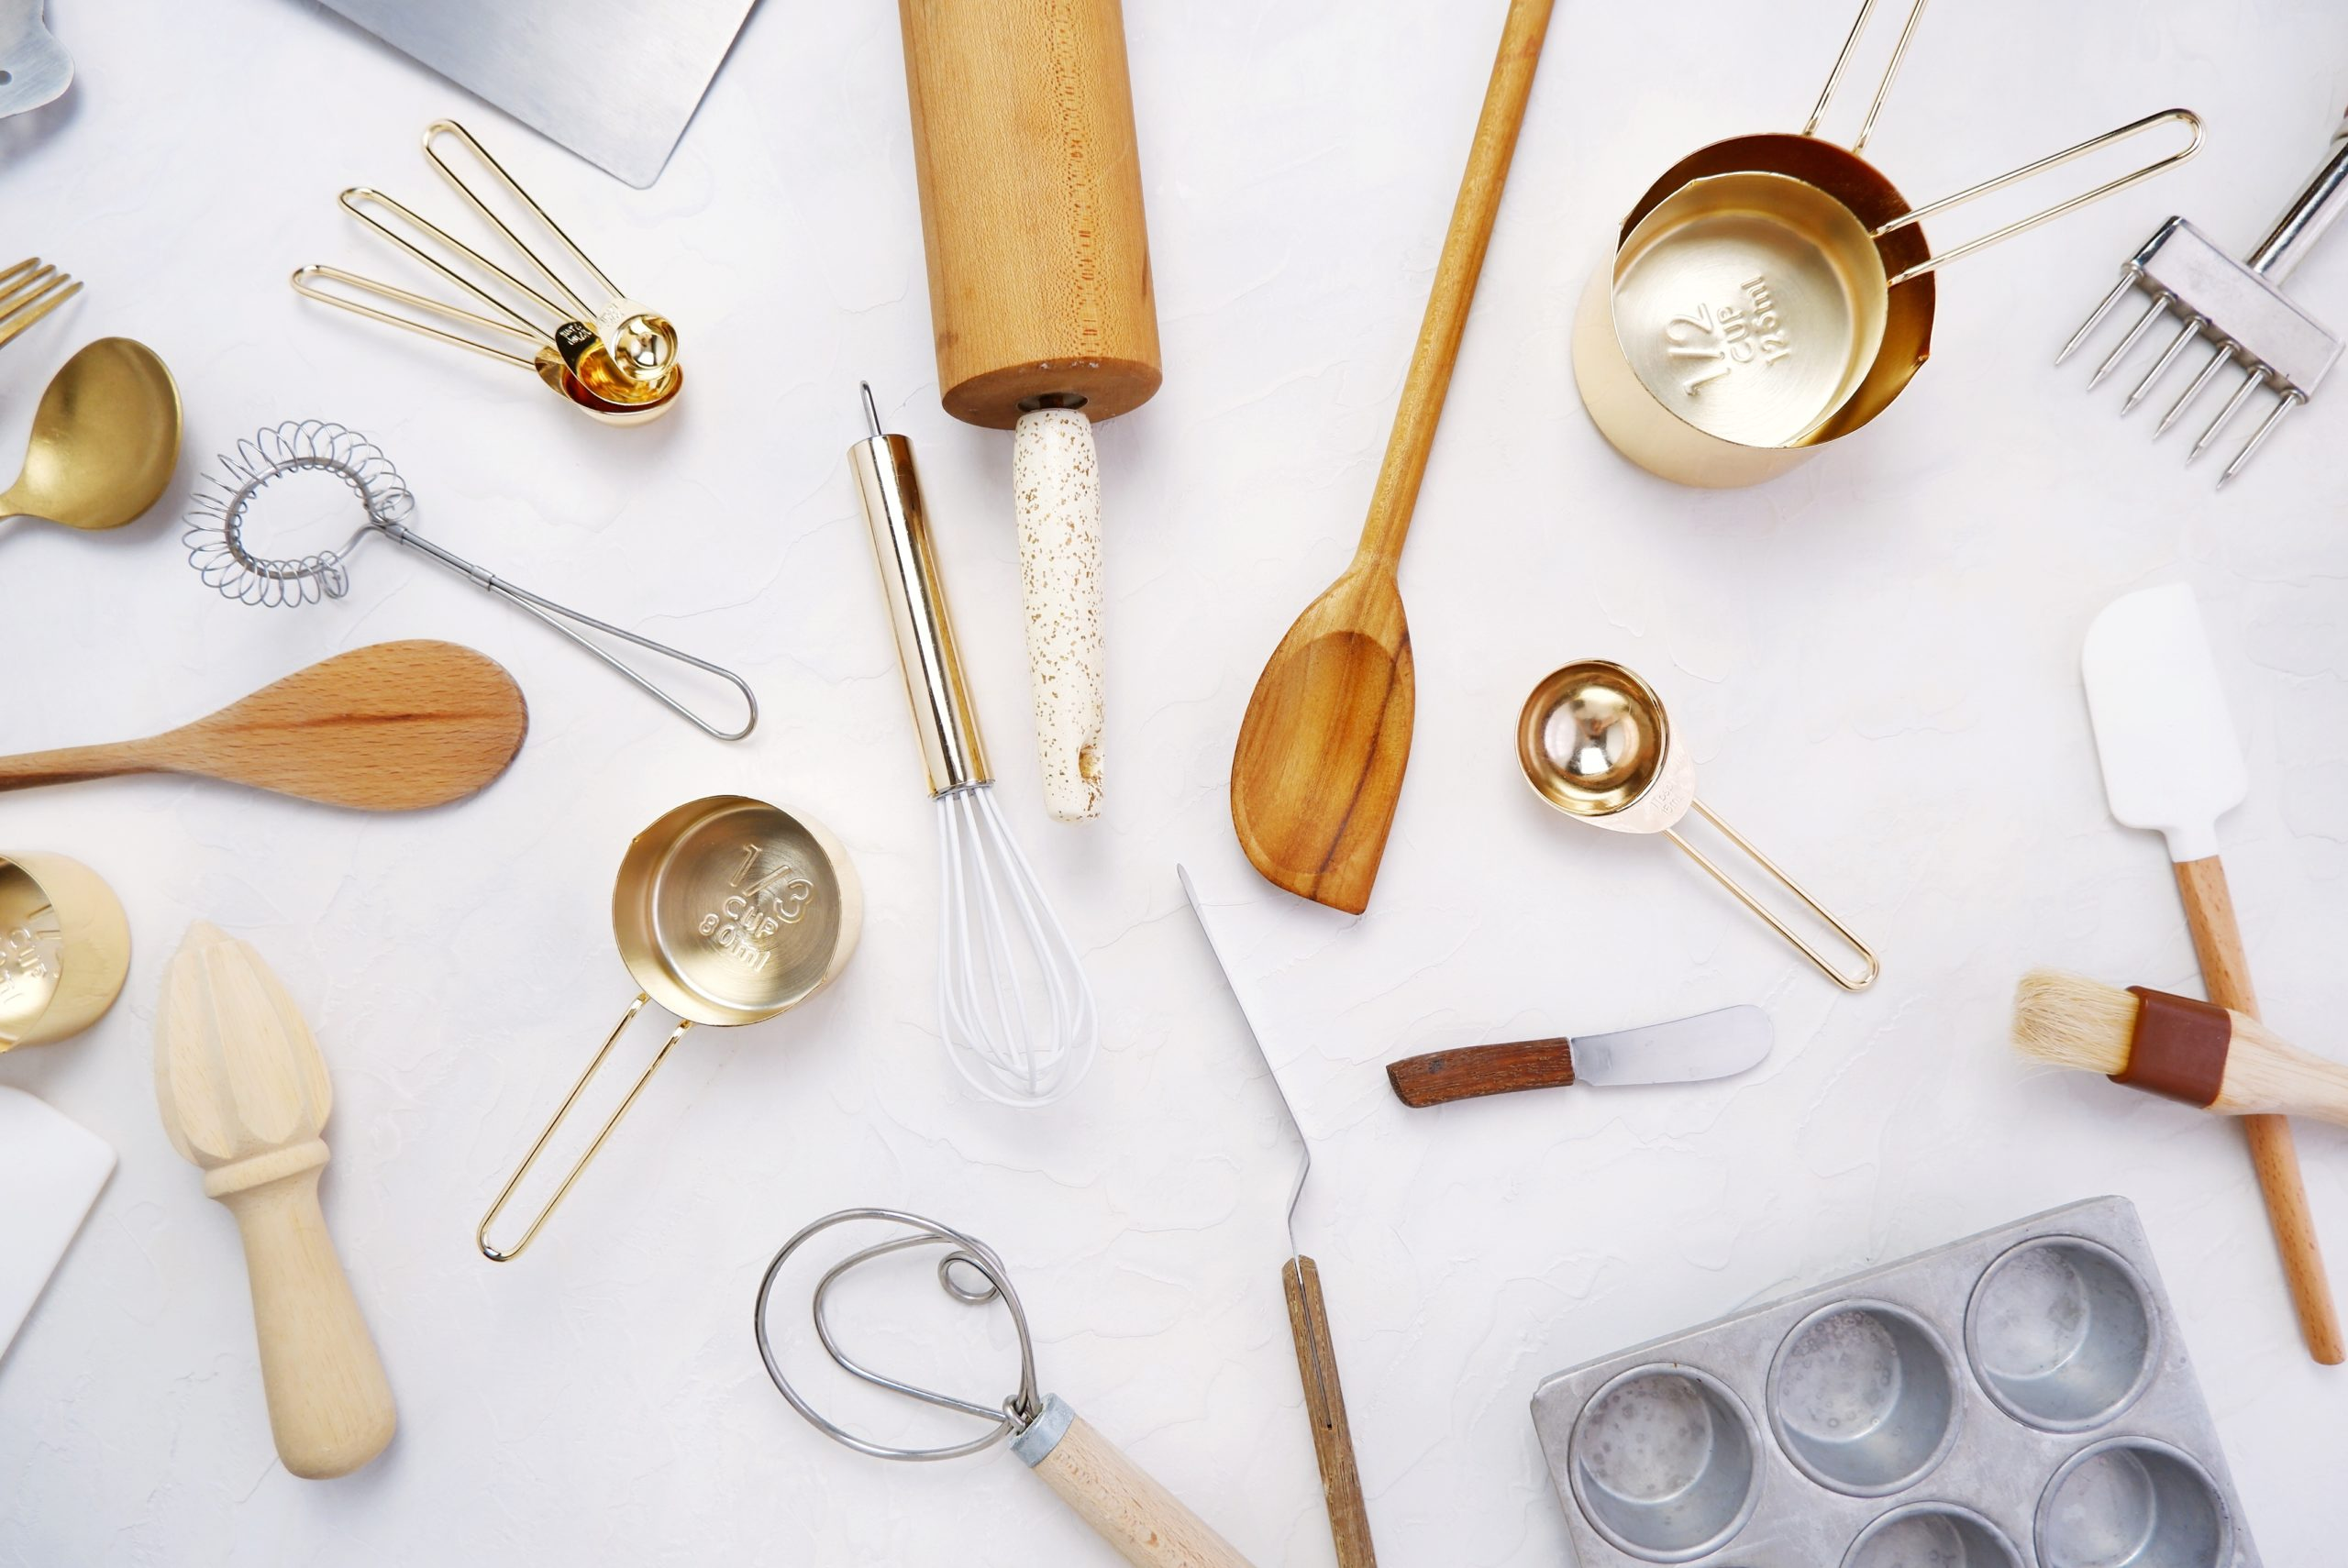 rolling pins, spatulas, pans and other tools used for baking